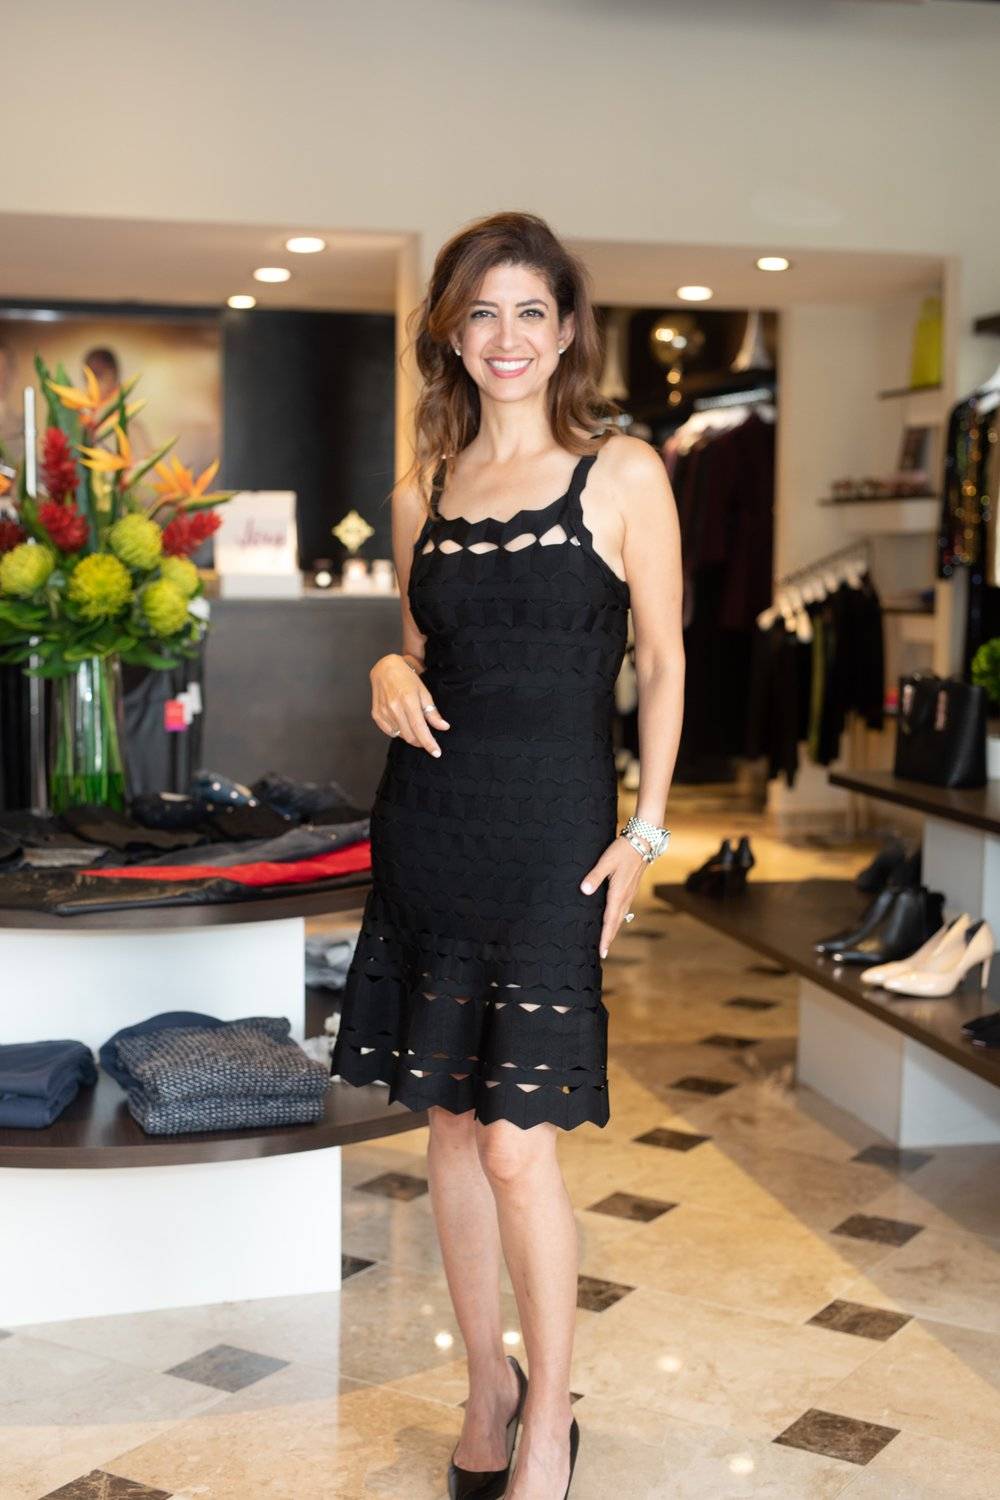 """Add a little fun with this fun dress. Gives new meaning to the """"little black dress"""".    Photo Credit: Jeriann Severson"""